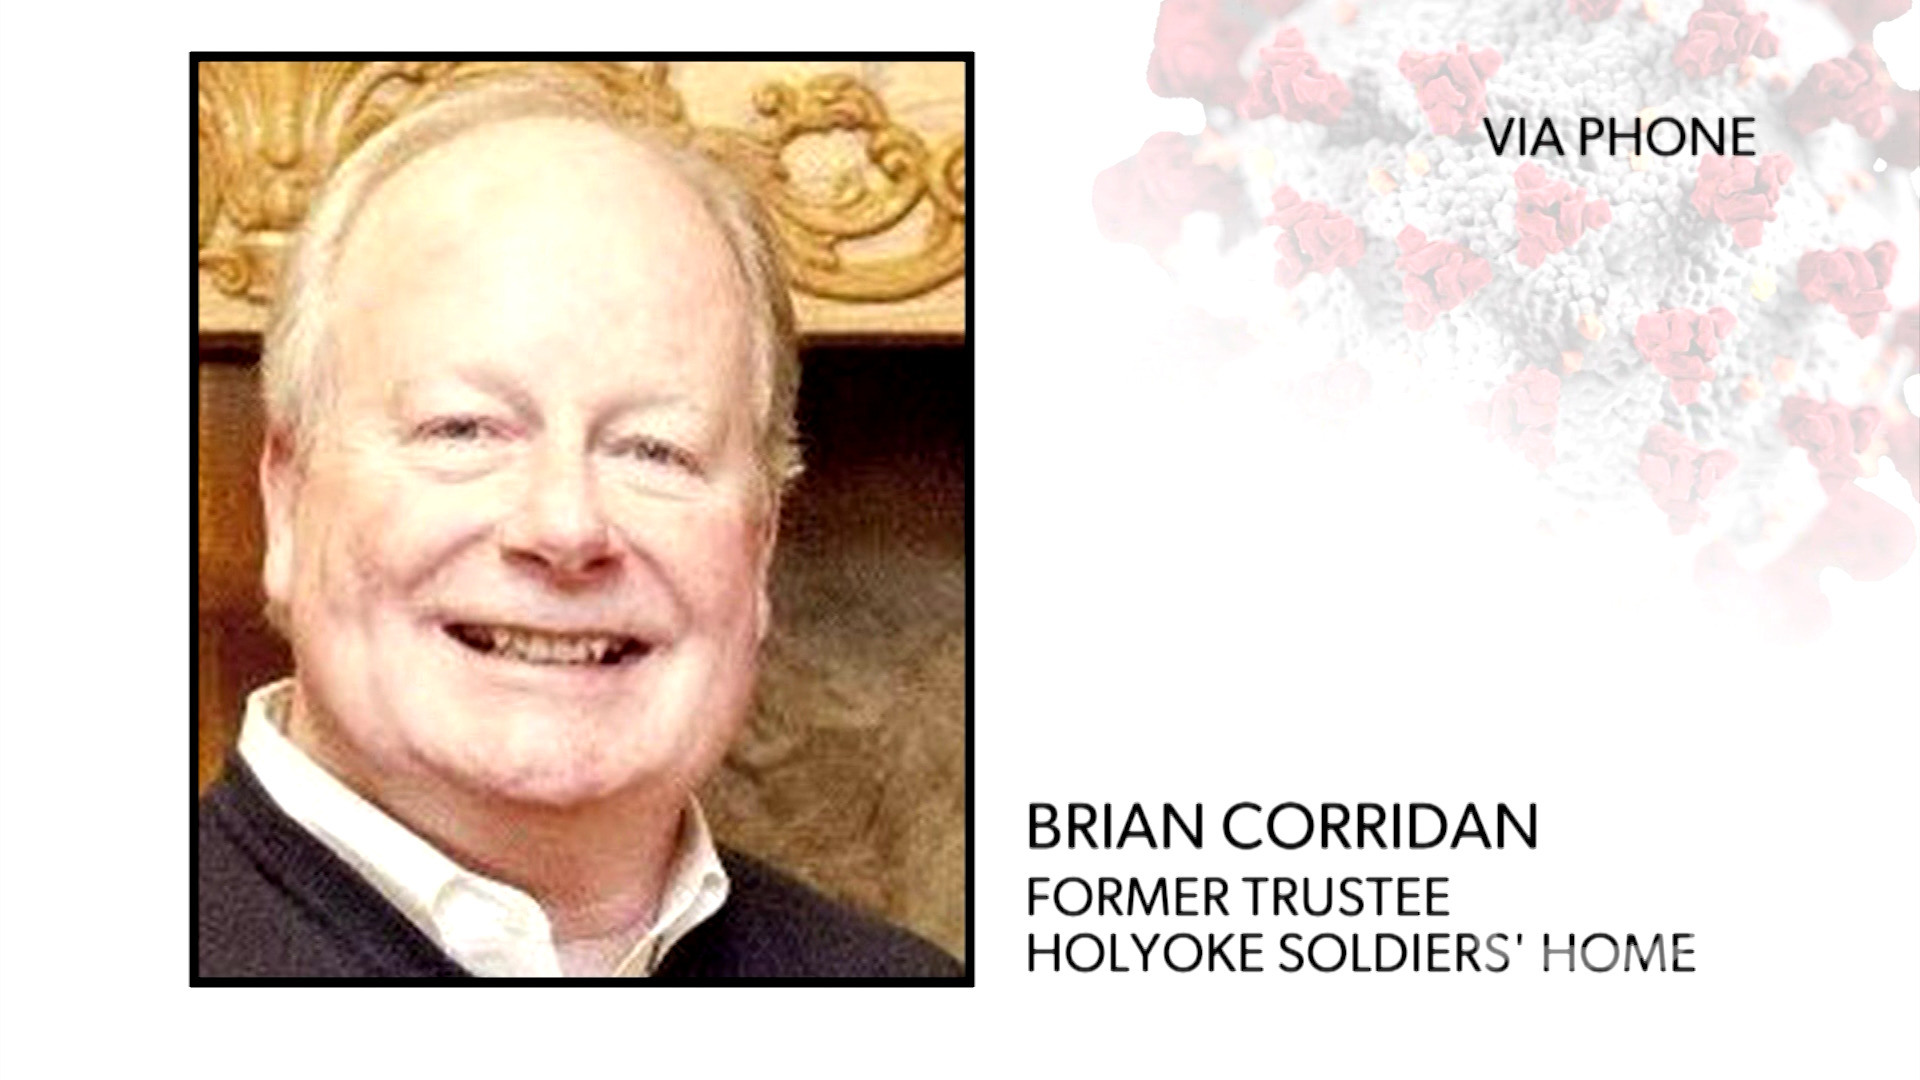 Former Trustee Brian Corridan discusses the COVID-19 outbreak at Holyoke Soldiers' Home & Superintendent Bennet Walsh being placed on administrative leave.